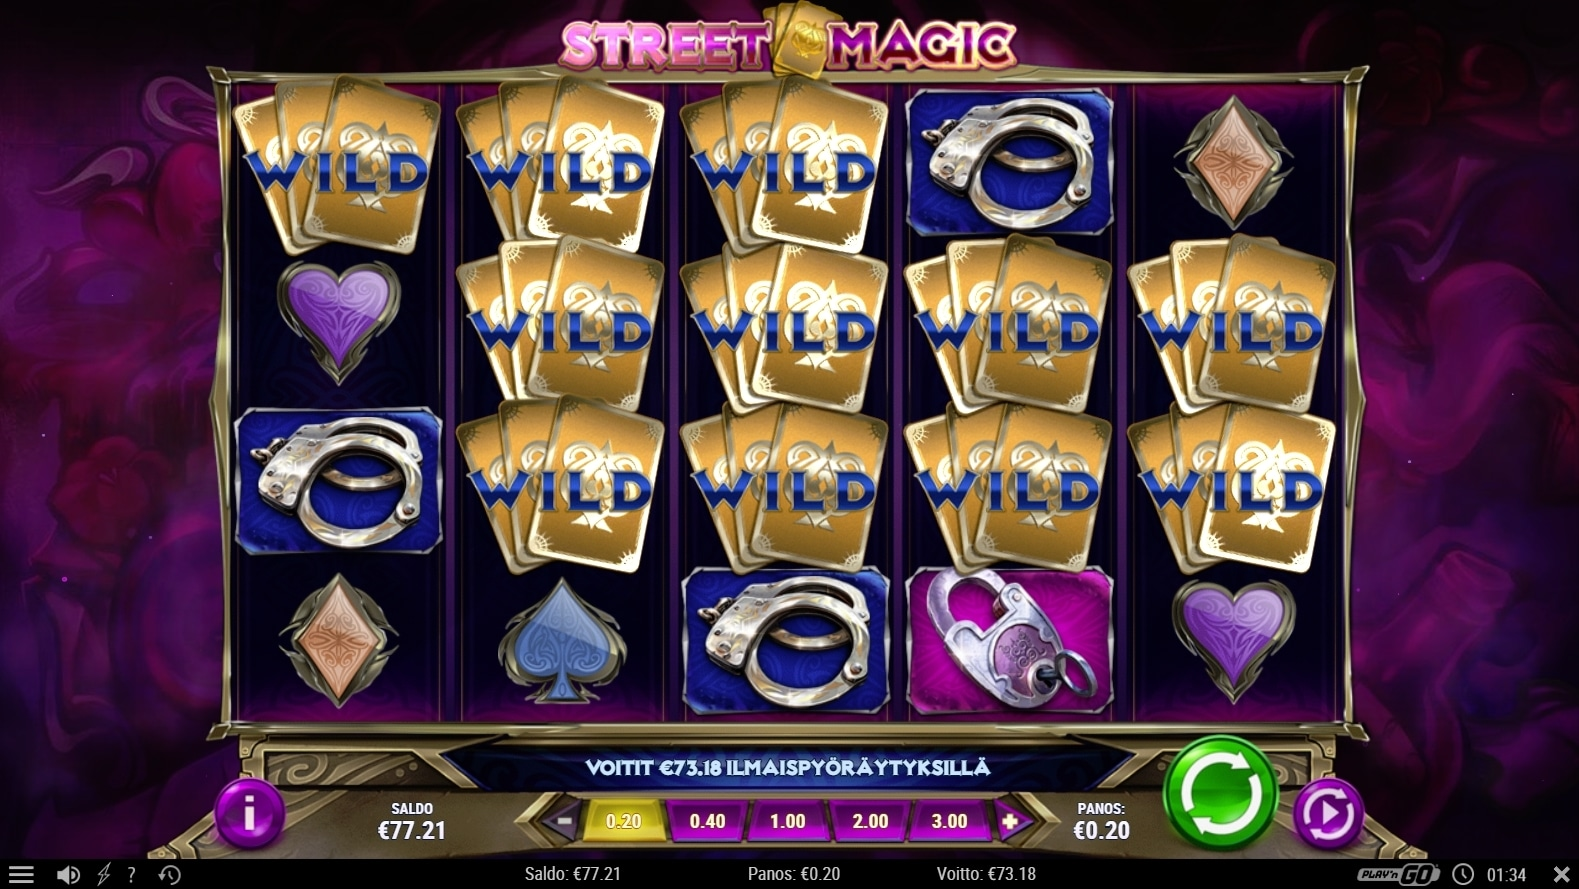 Street Magic slot big win picture